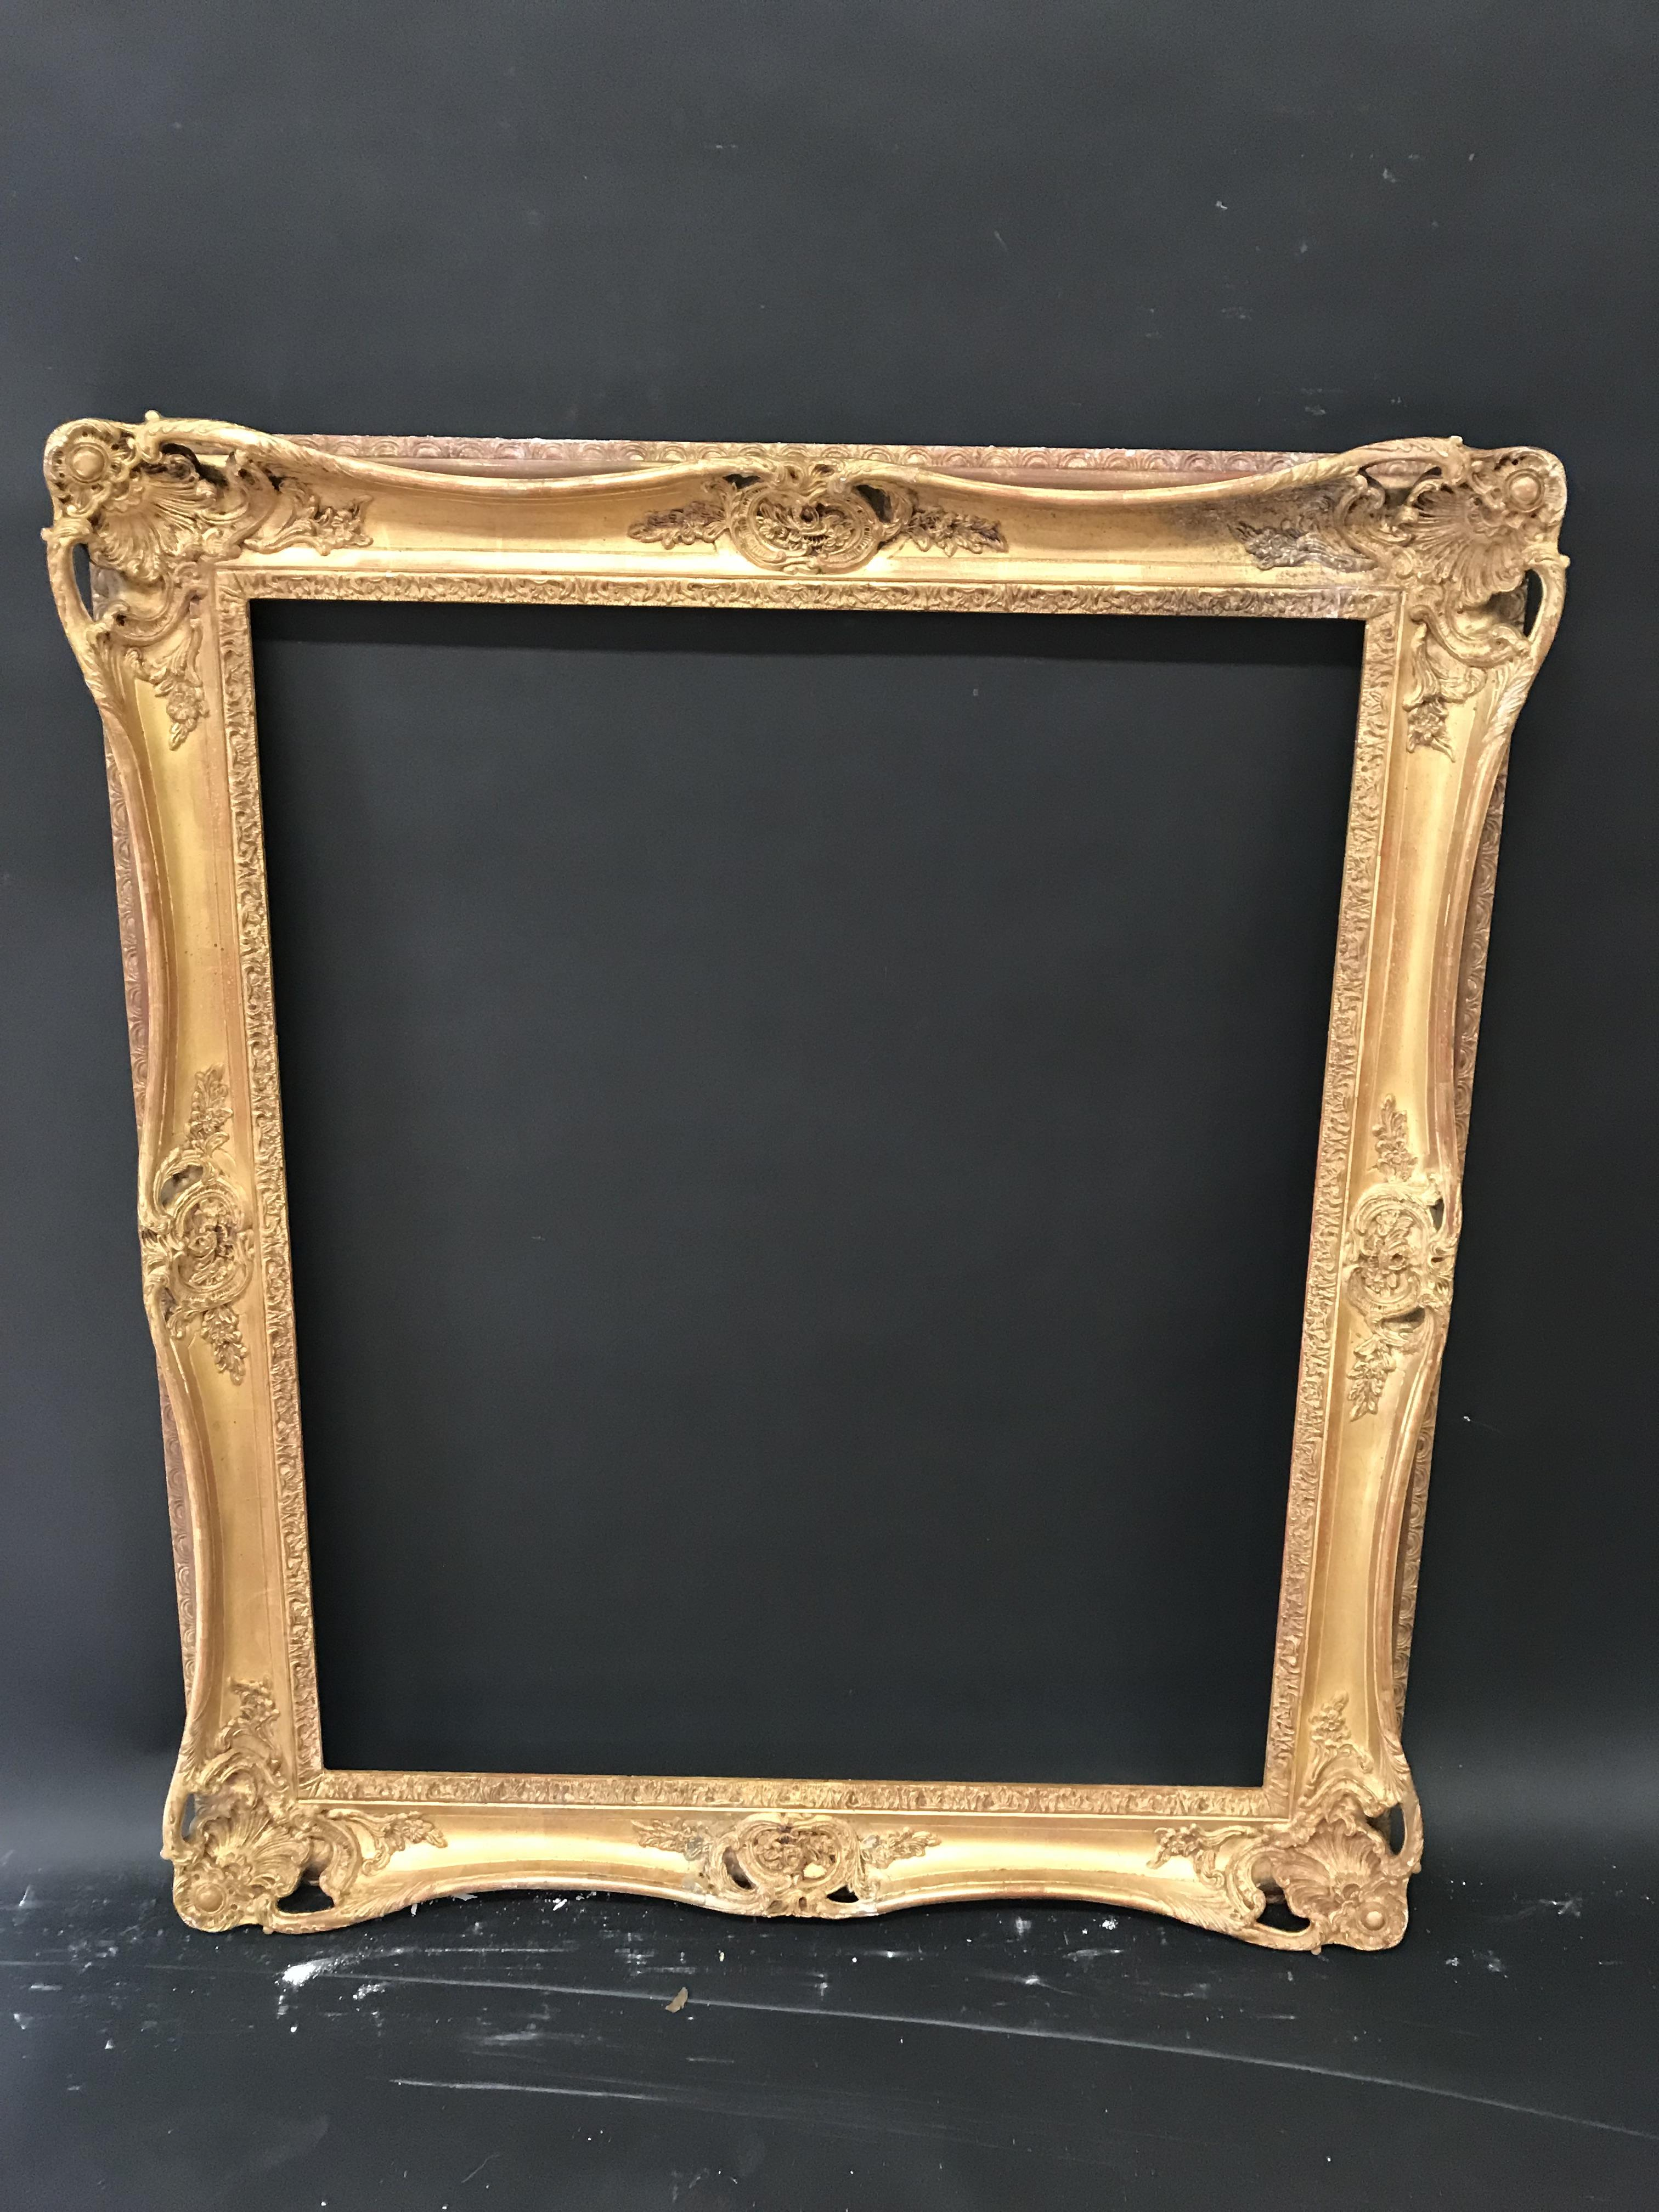 Lot 52 - 20th Century English School. A Continental Style Composition Frame, with Swept and Pierced Centres